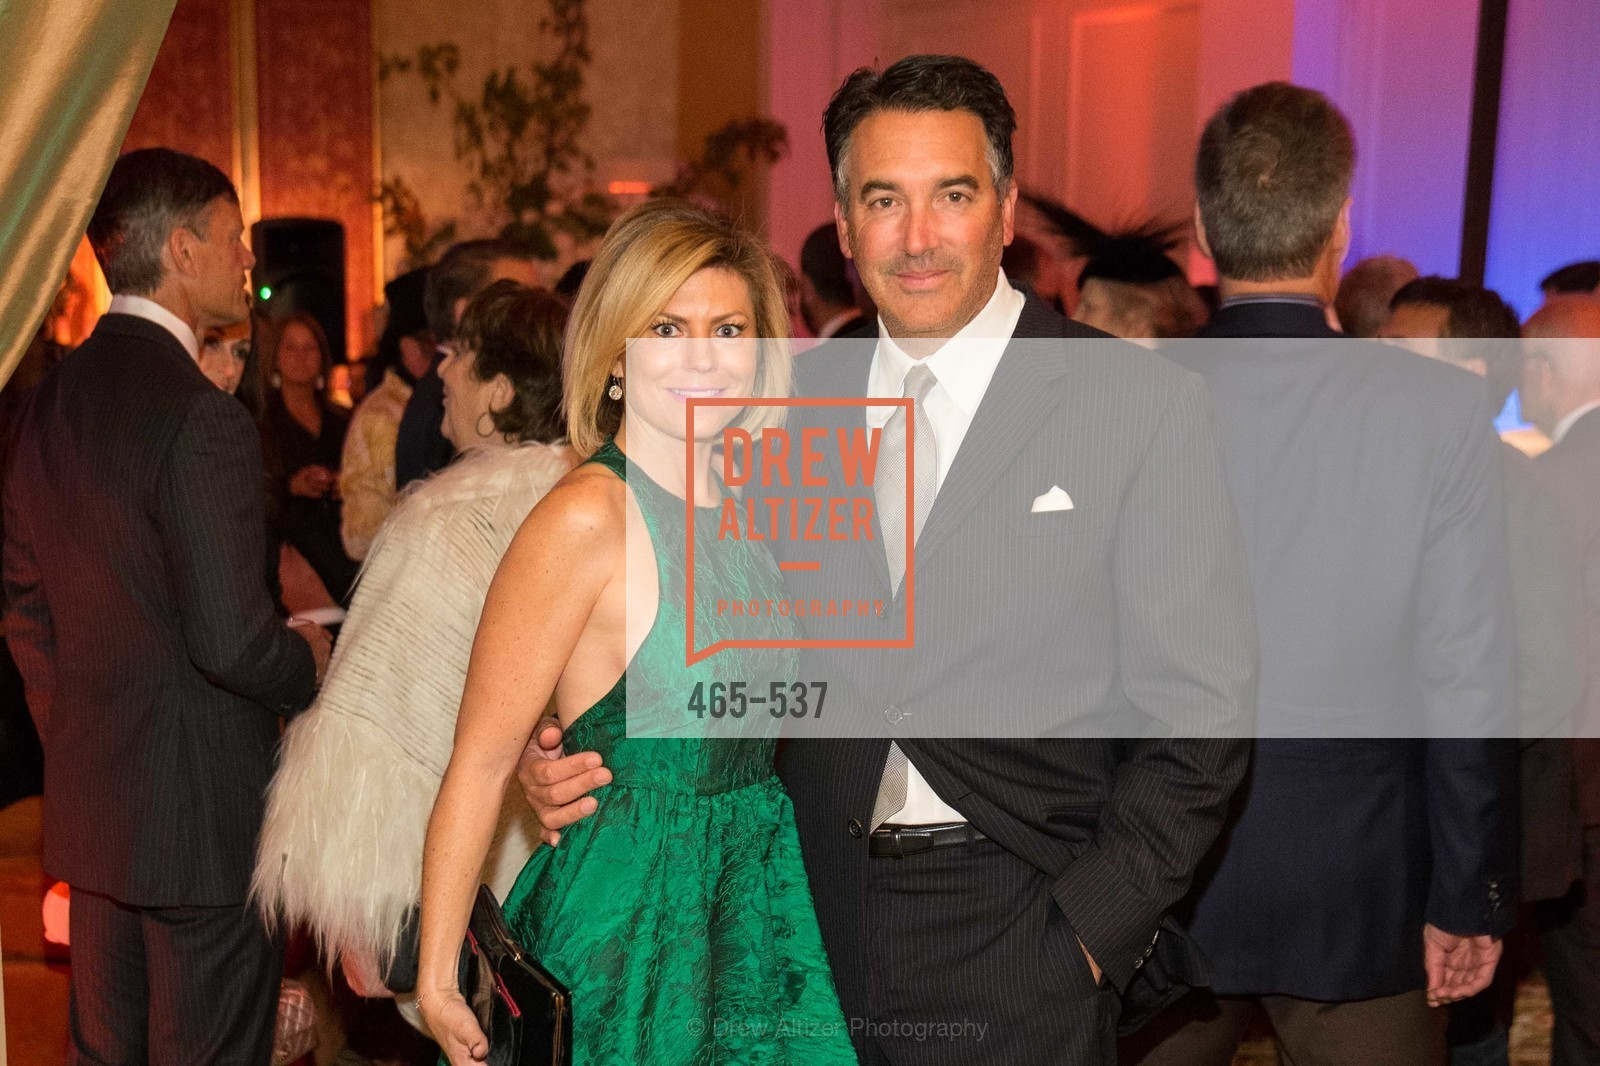 Kimberly Miller, Michael Polenske, TOP OF THE MARK'S 75TH Anniversary Party, US, November 7th, 2014,Drew Altizer, Drew Altizer Photography, full-service agency, private events, San Francisco photographer, photographer california